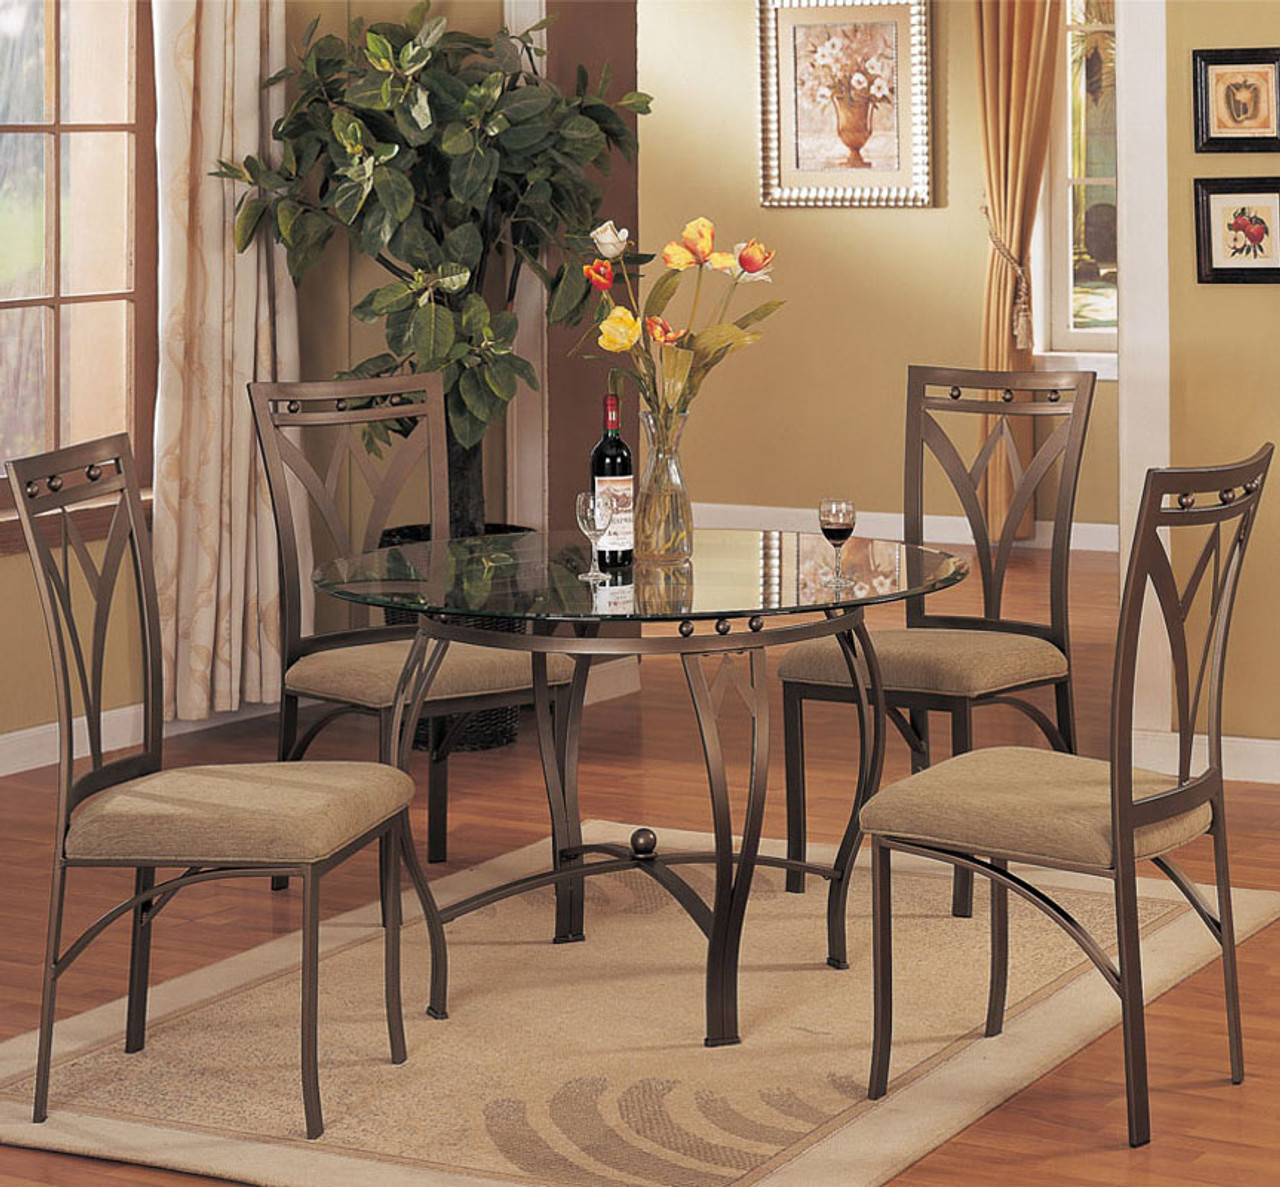 Monarch Antique Gold 5 PC Dining Set